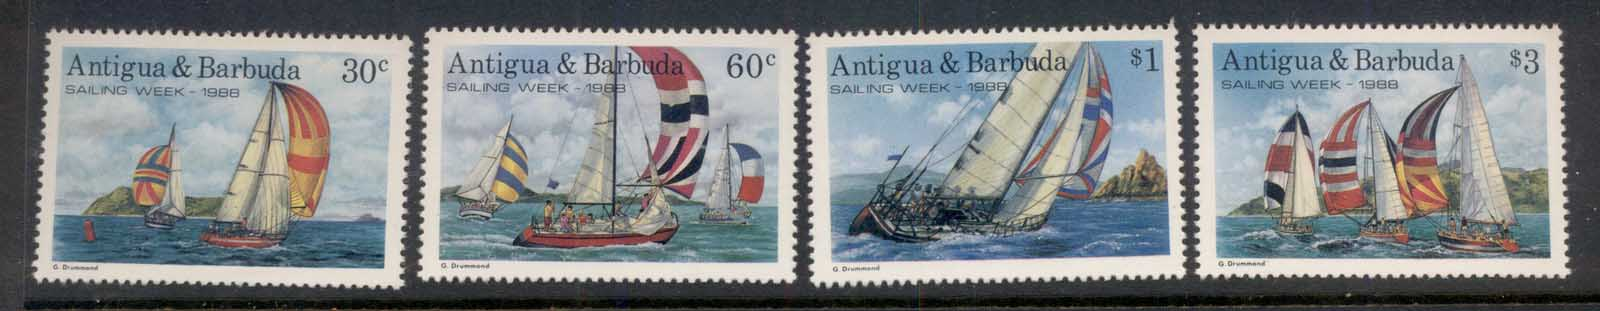 Antigua & Barbuda 1988 Sailing Week MUH